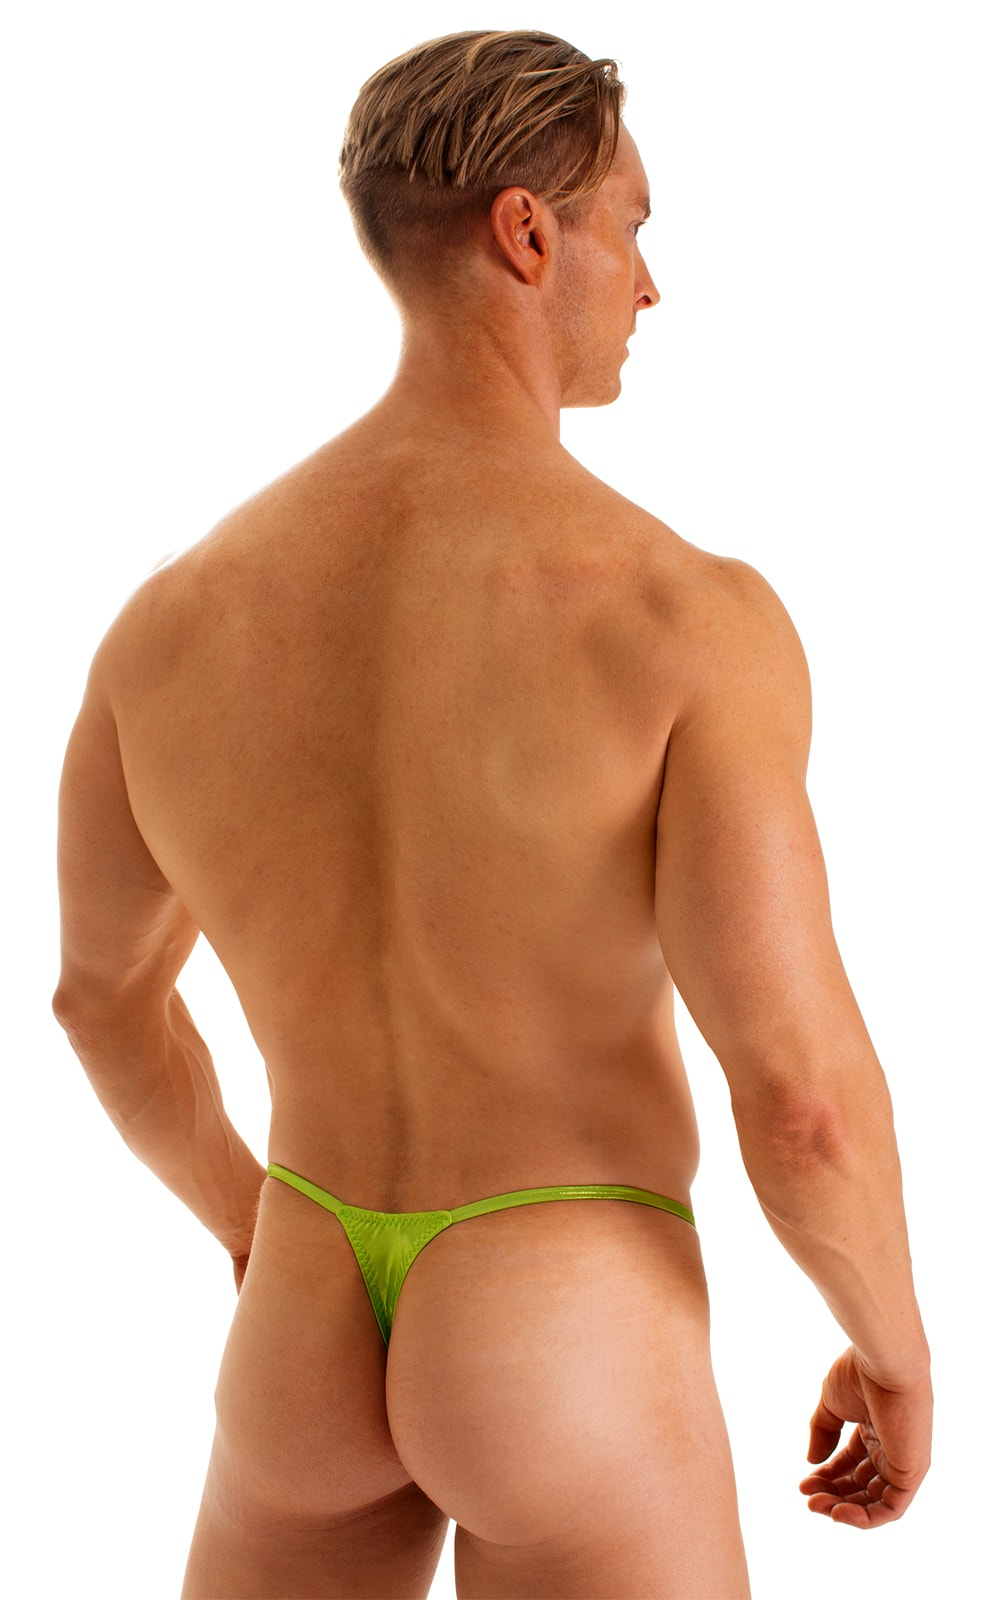 Smooth Pouch Skinny Sides Swim Thong in Ice Karma Lemon-Lime 2